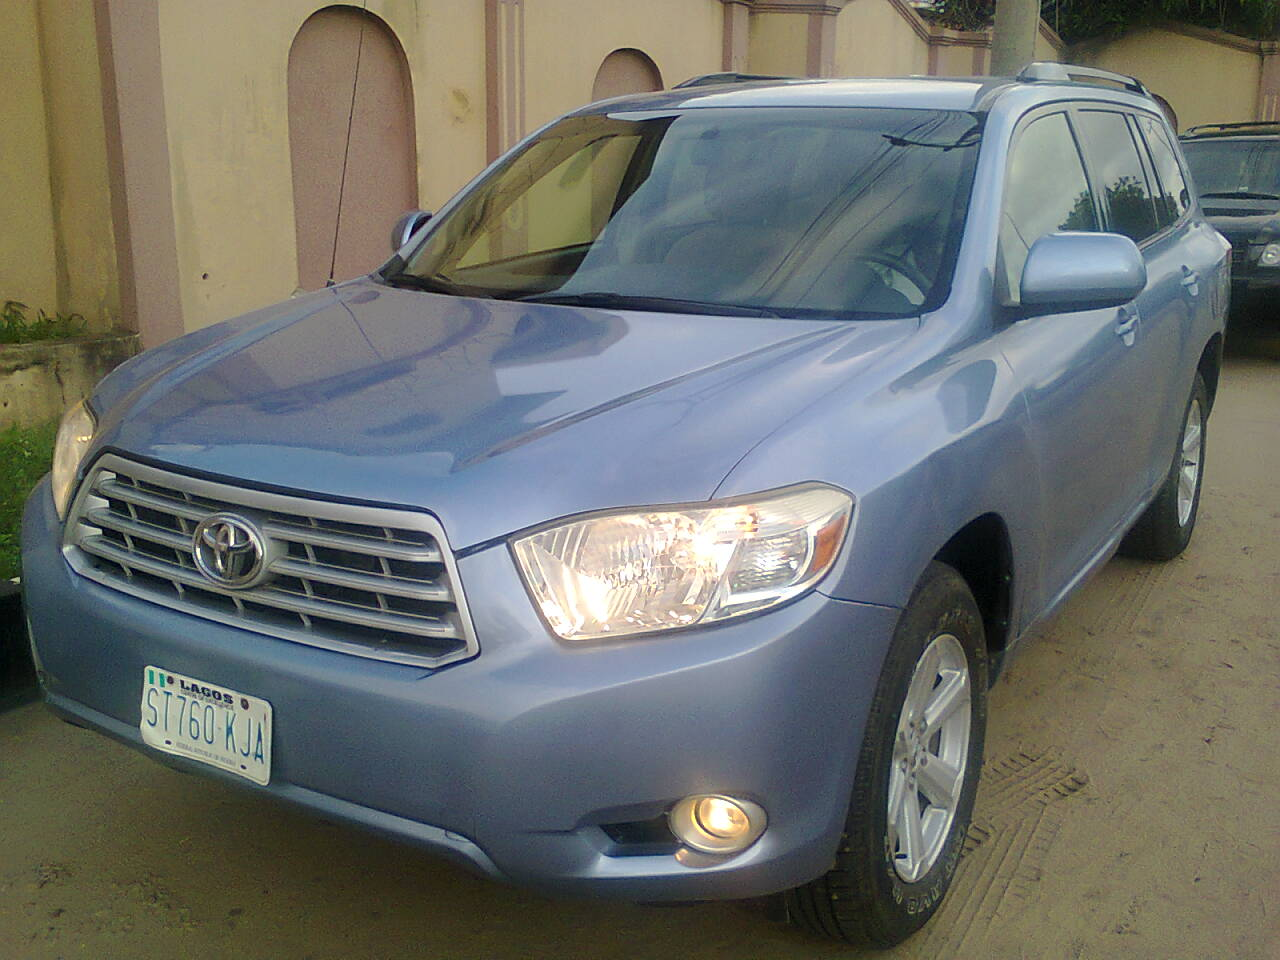 2008 toyota highlander registered for sale super clean and cheap autos nigeria. Black Bedroom Furniture Sets. Home Design Ideas